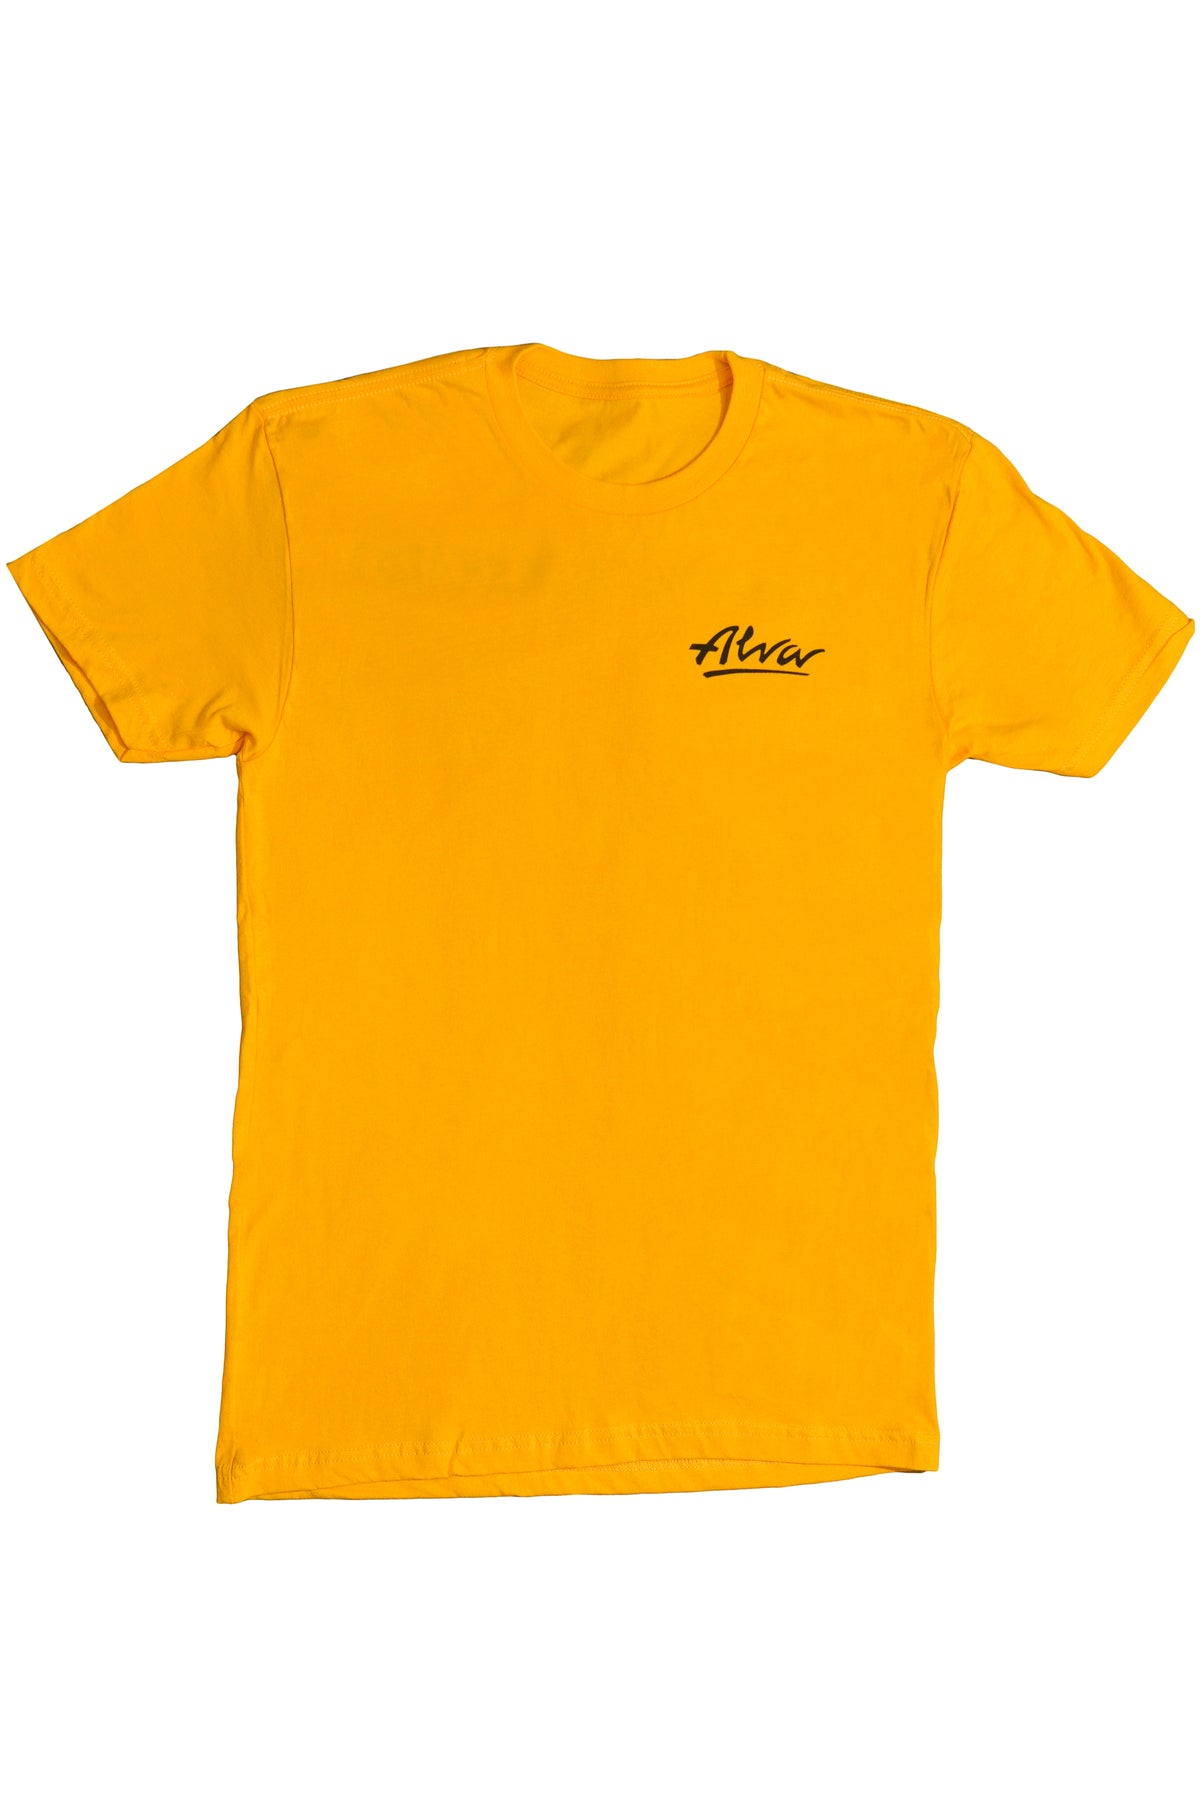 ALVA GOLD DOMINATE LOGO T-SHIRT